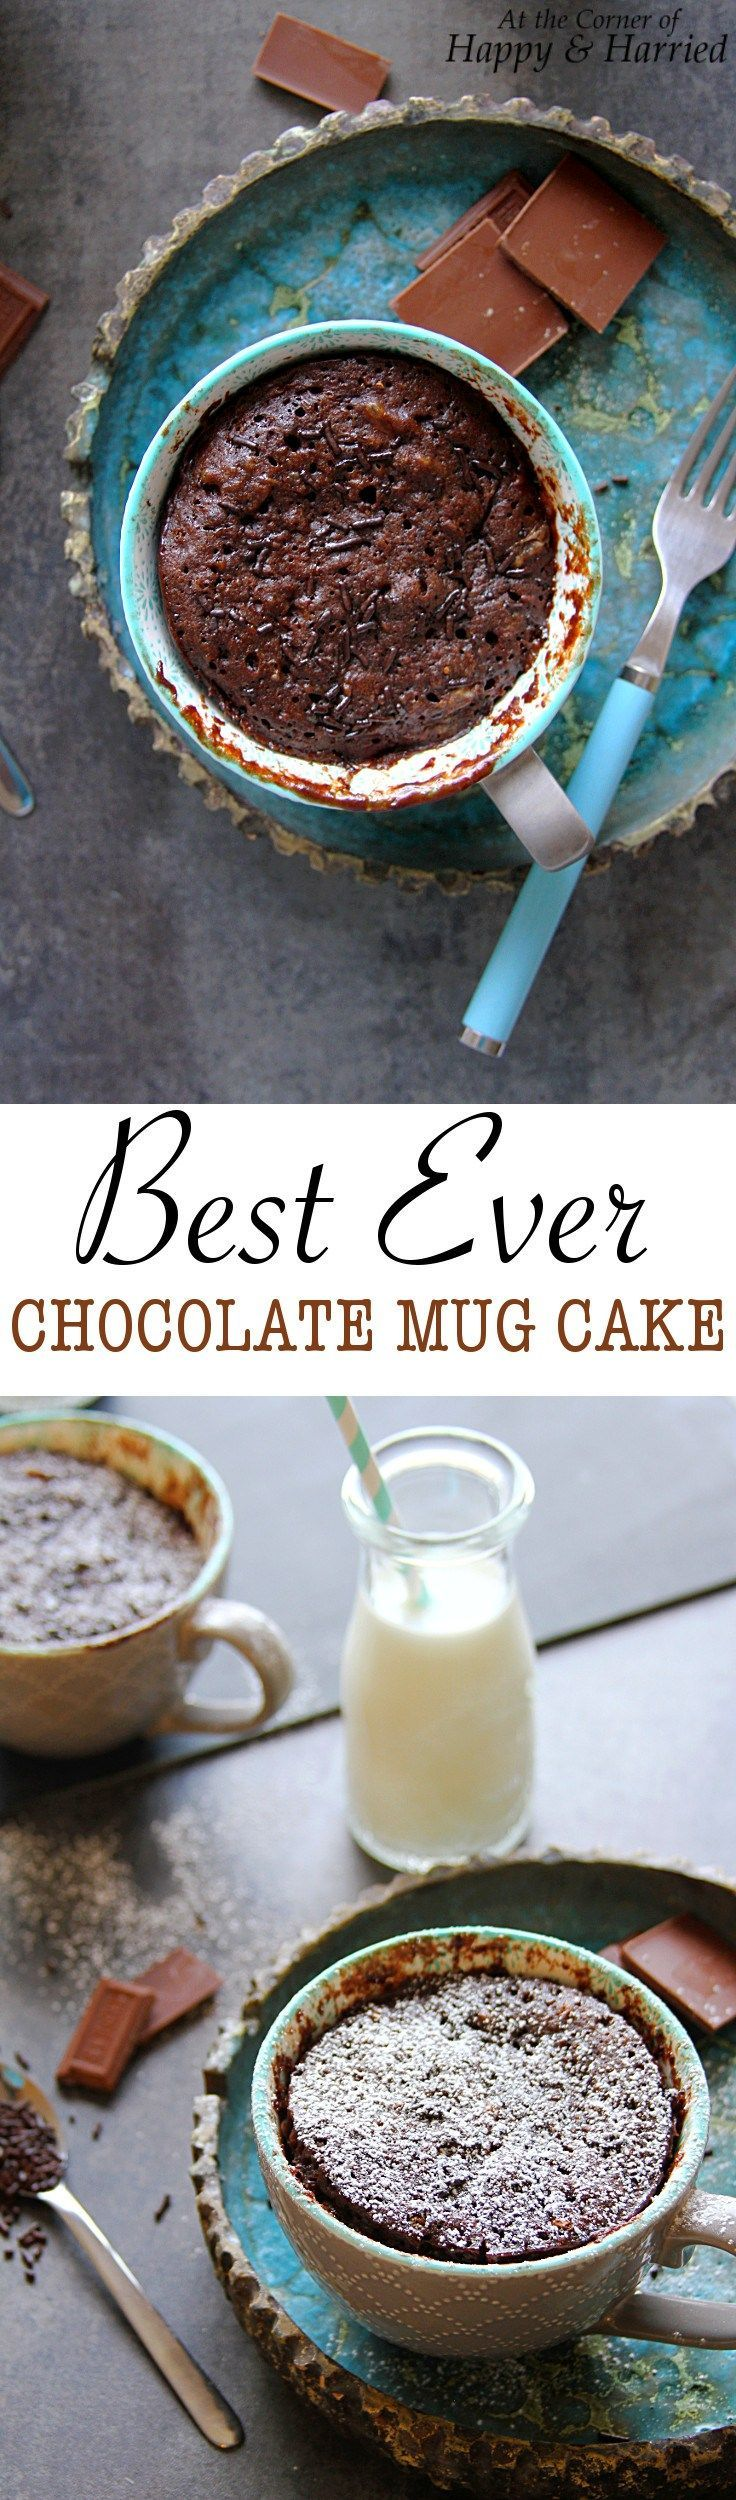 BEST EVER CHOCOLATE MUG CAKE - HAPPY&HARRIED